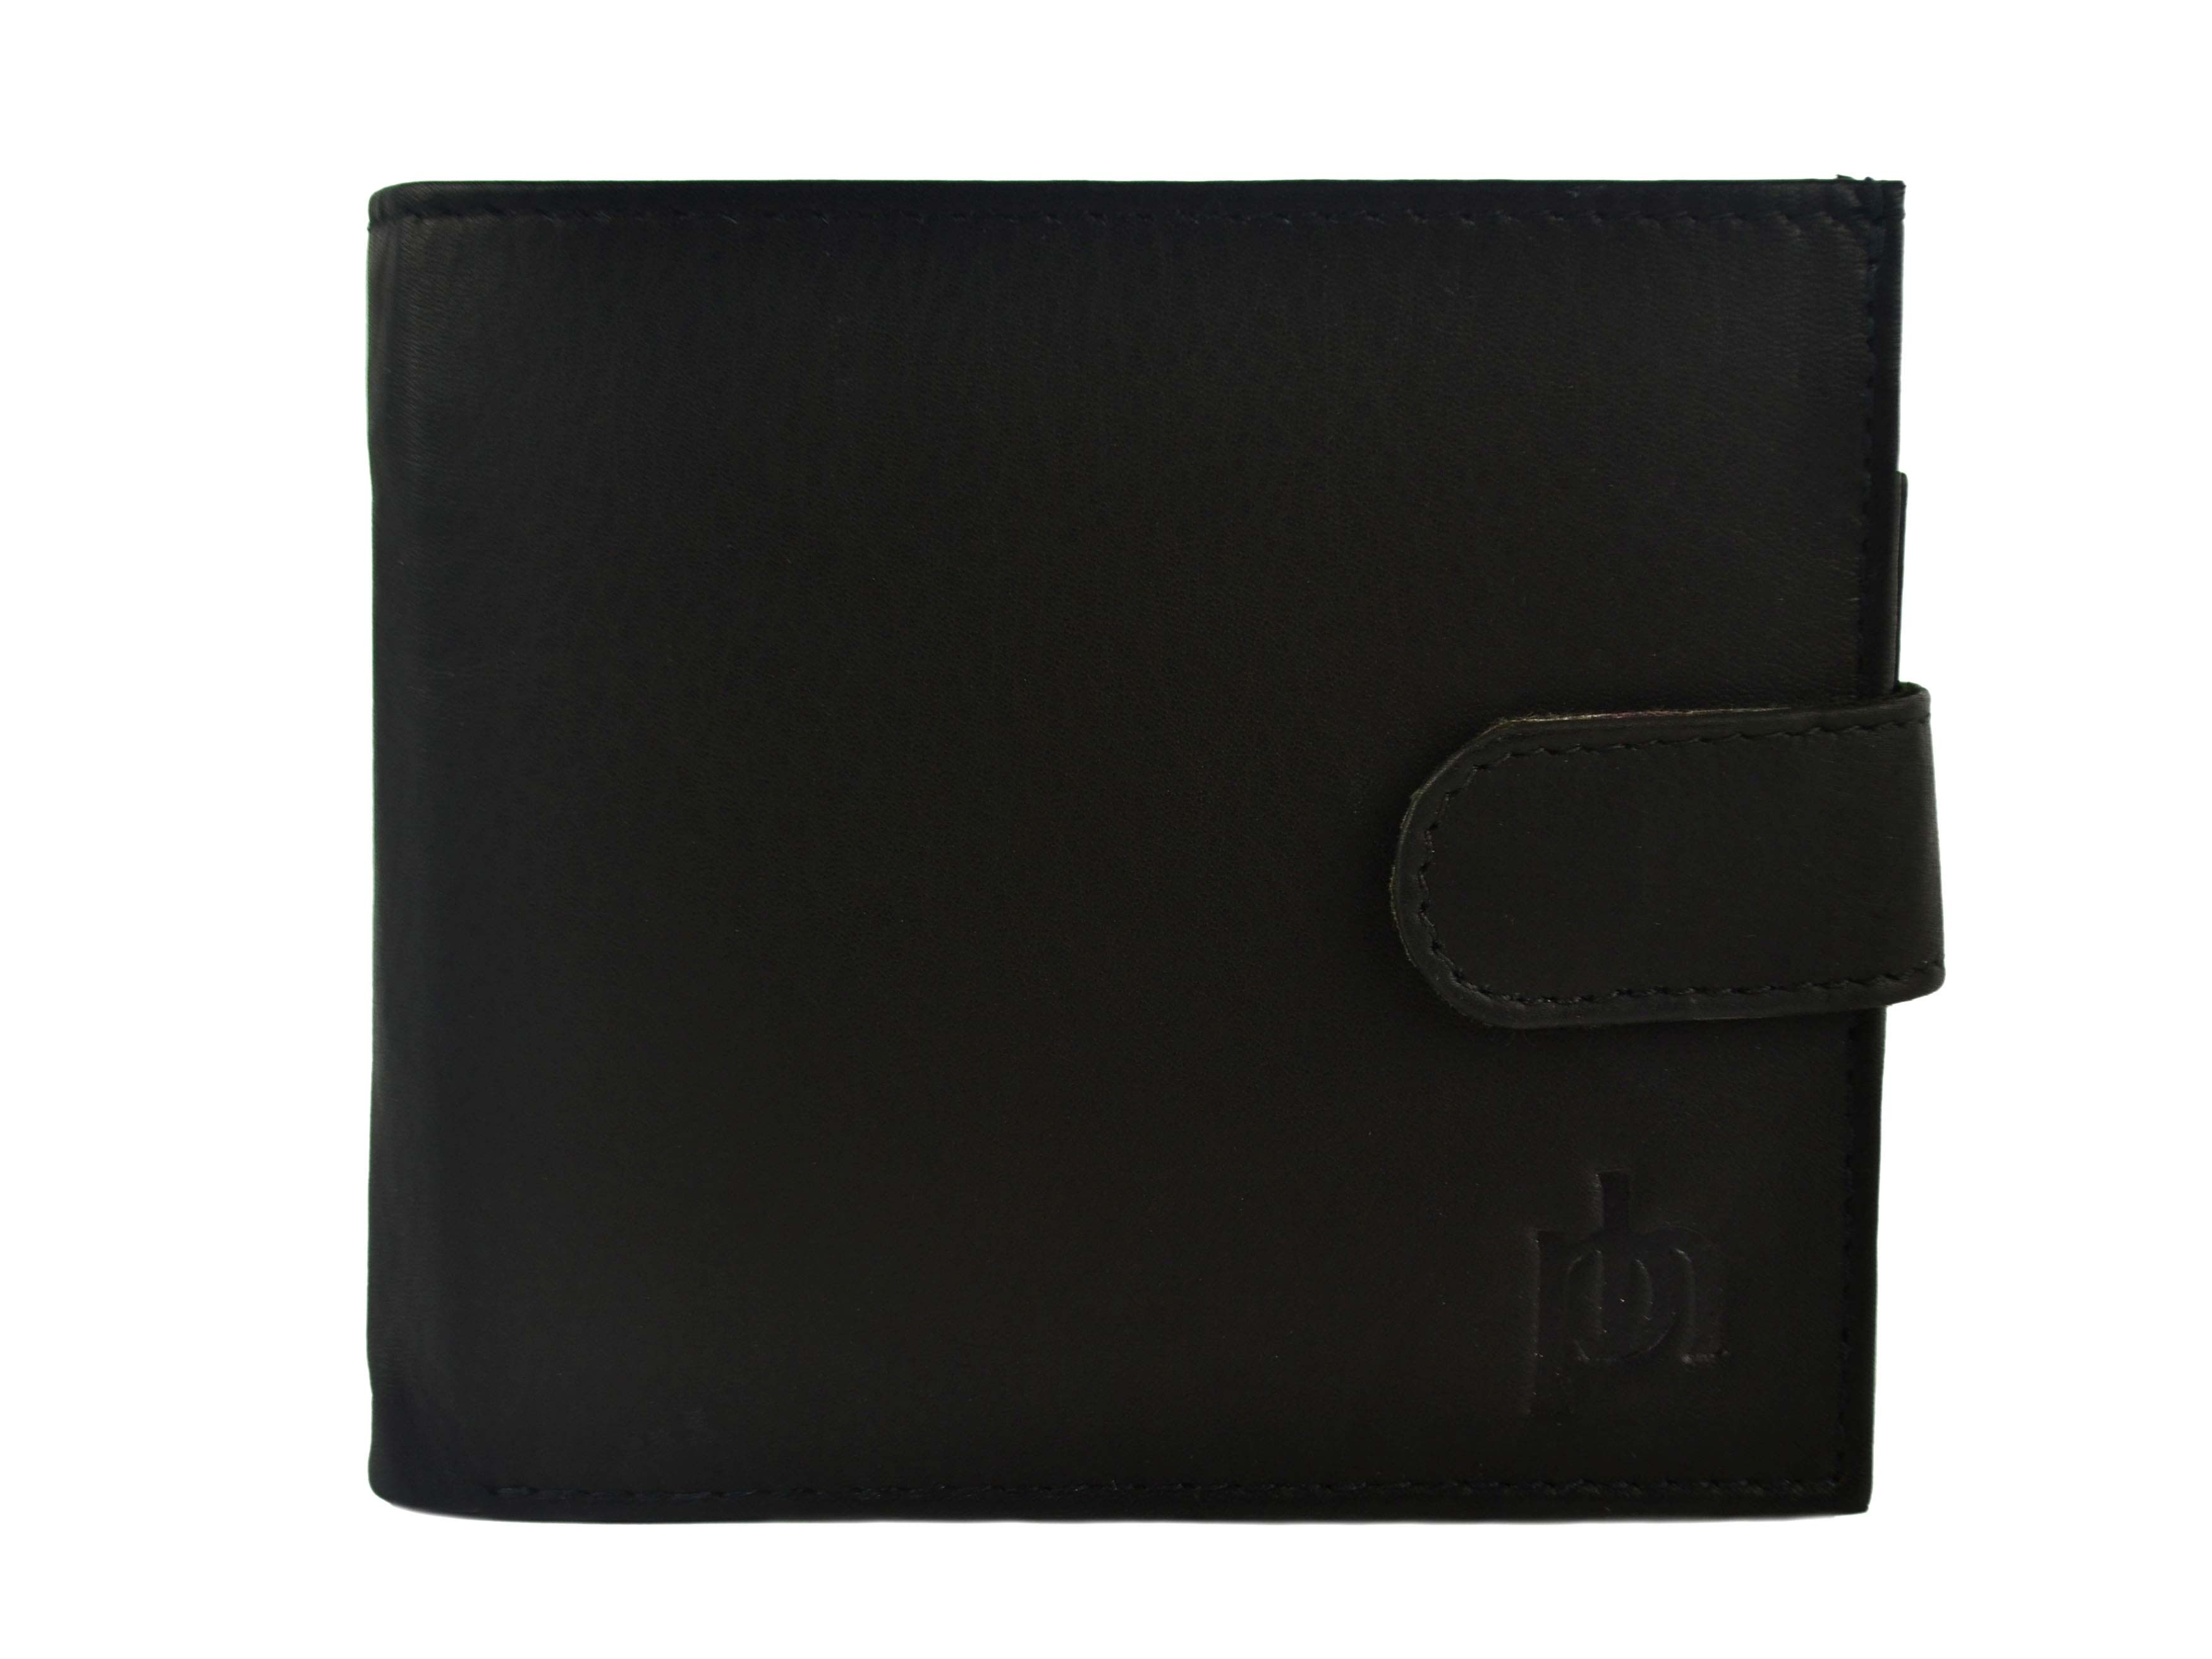 Mens-Quality-Soft-Leather-Wallet-by-Prime-Hide-Gift-Boxed-Stylish-with-Tab thumbnail 3